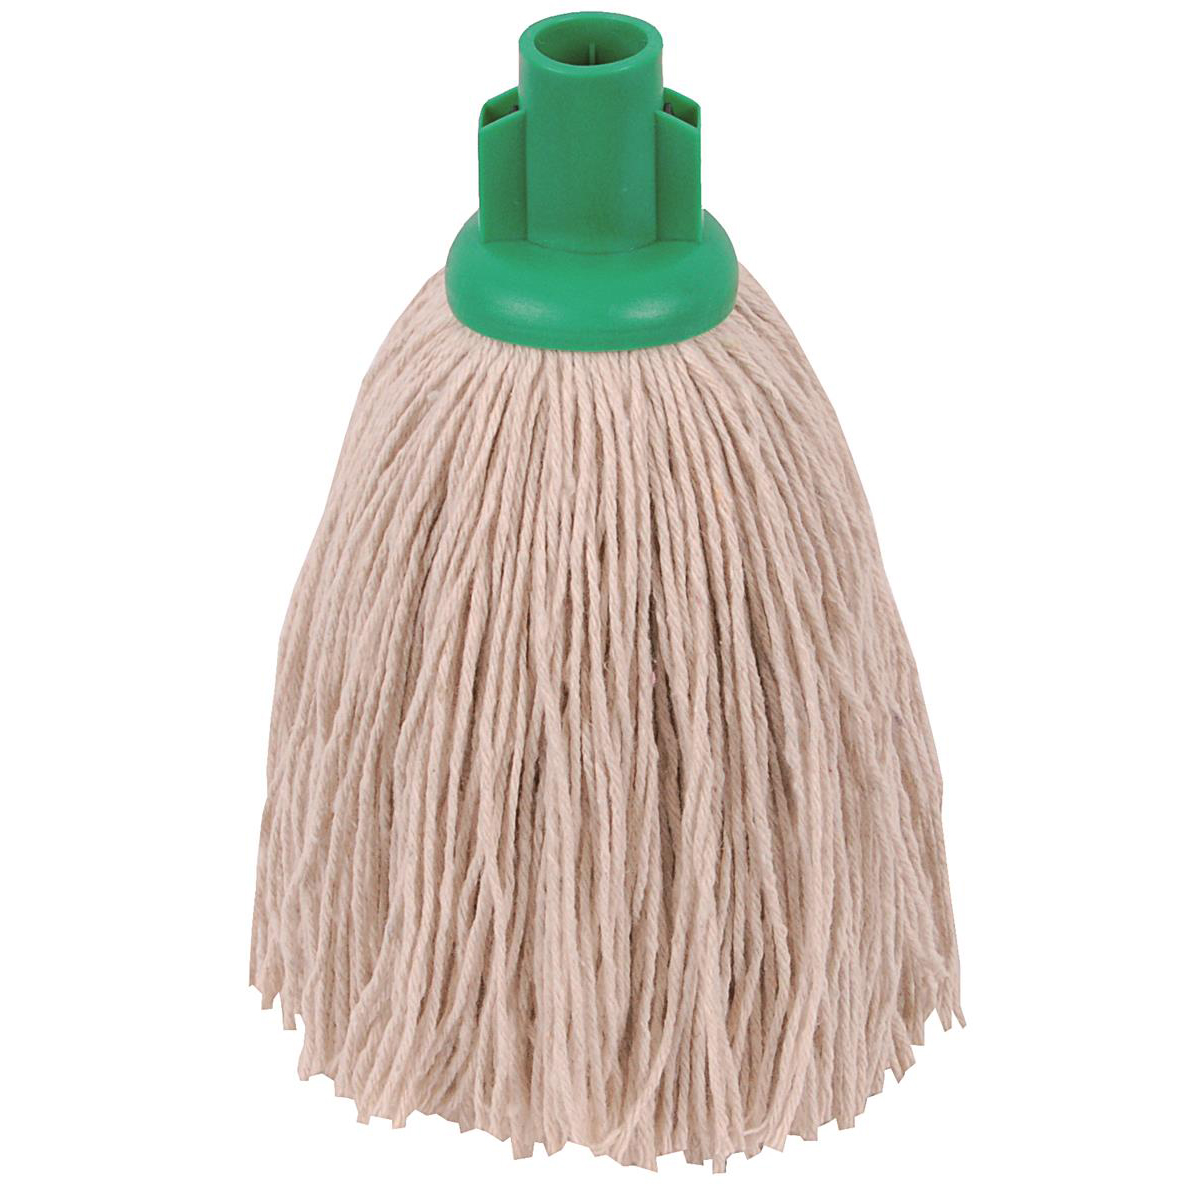 Robert Scott & Sons Twine Socket Mop for Rough Surfaces 12oz Green Ref 101852GREEN [Pack 10]